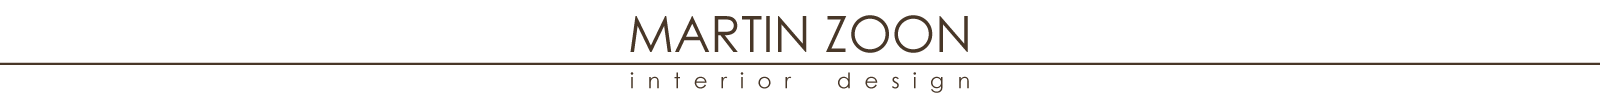 Martin Zoon – Interior design